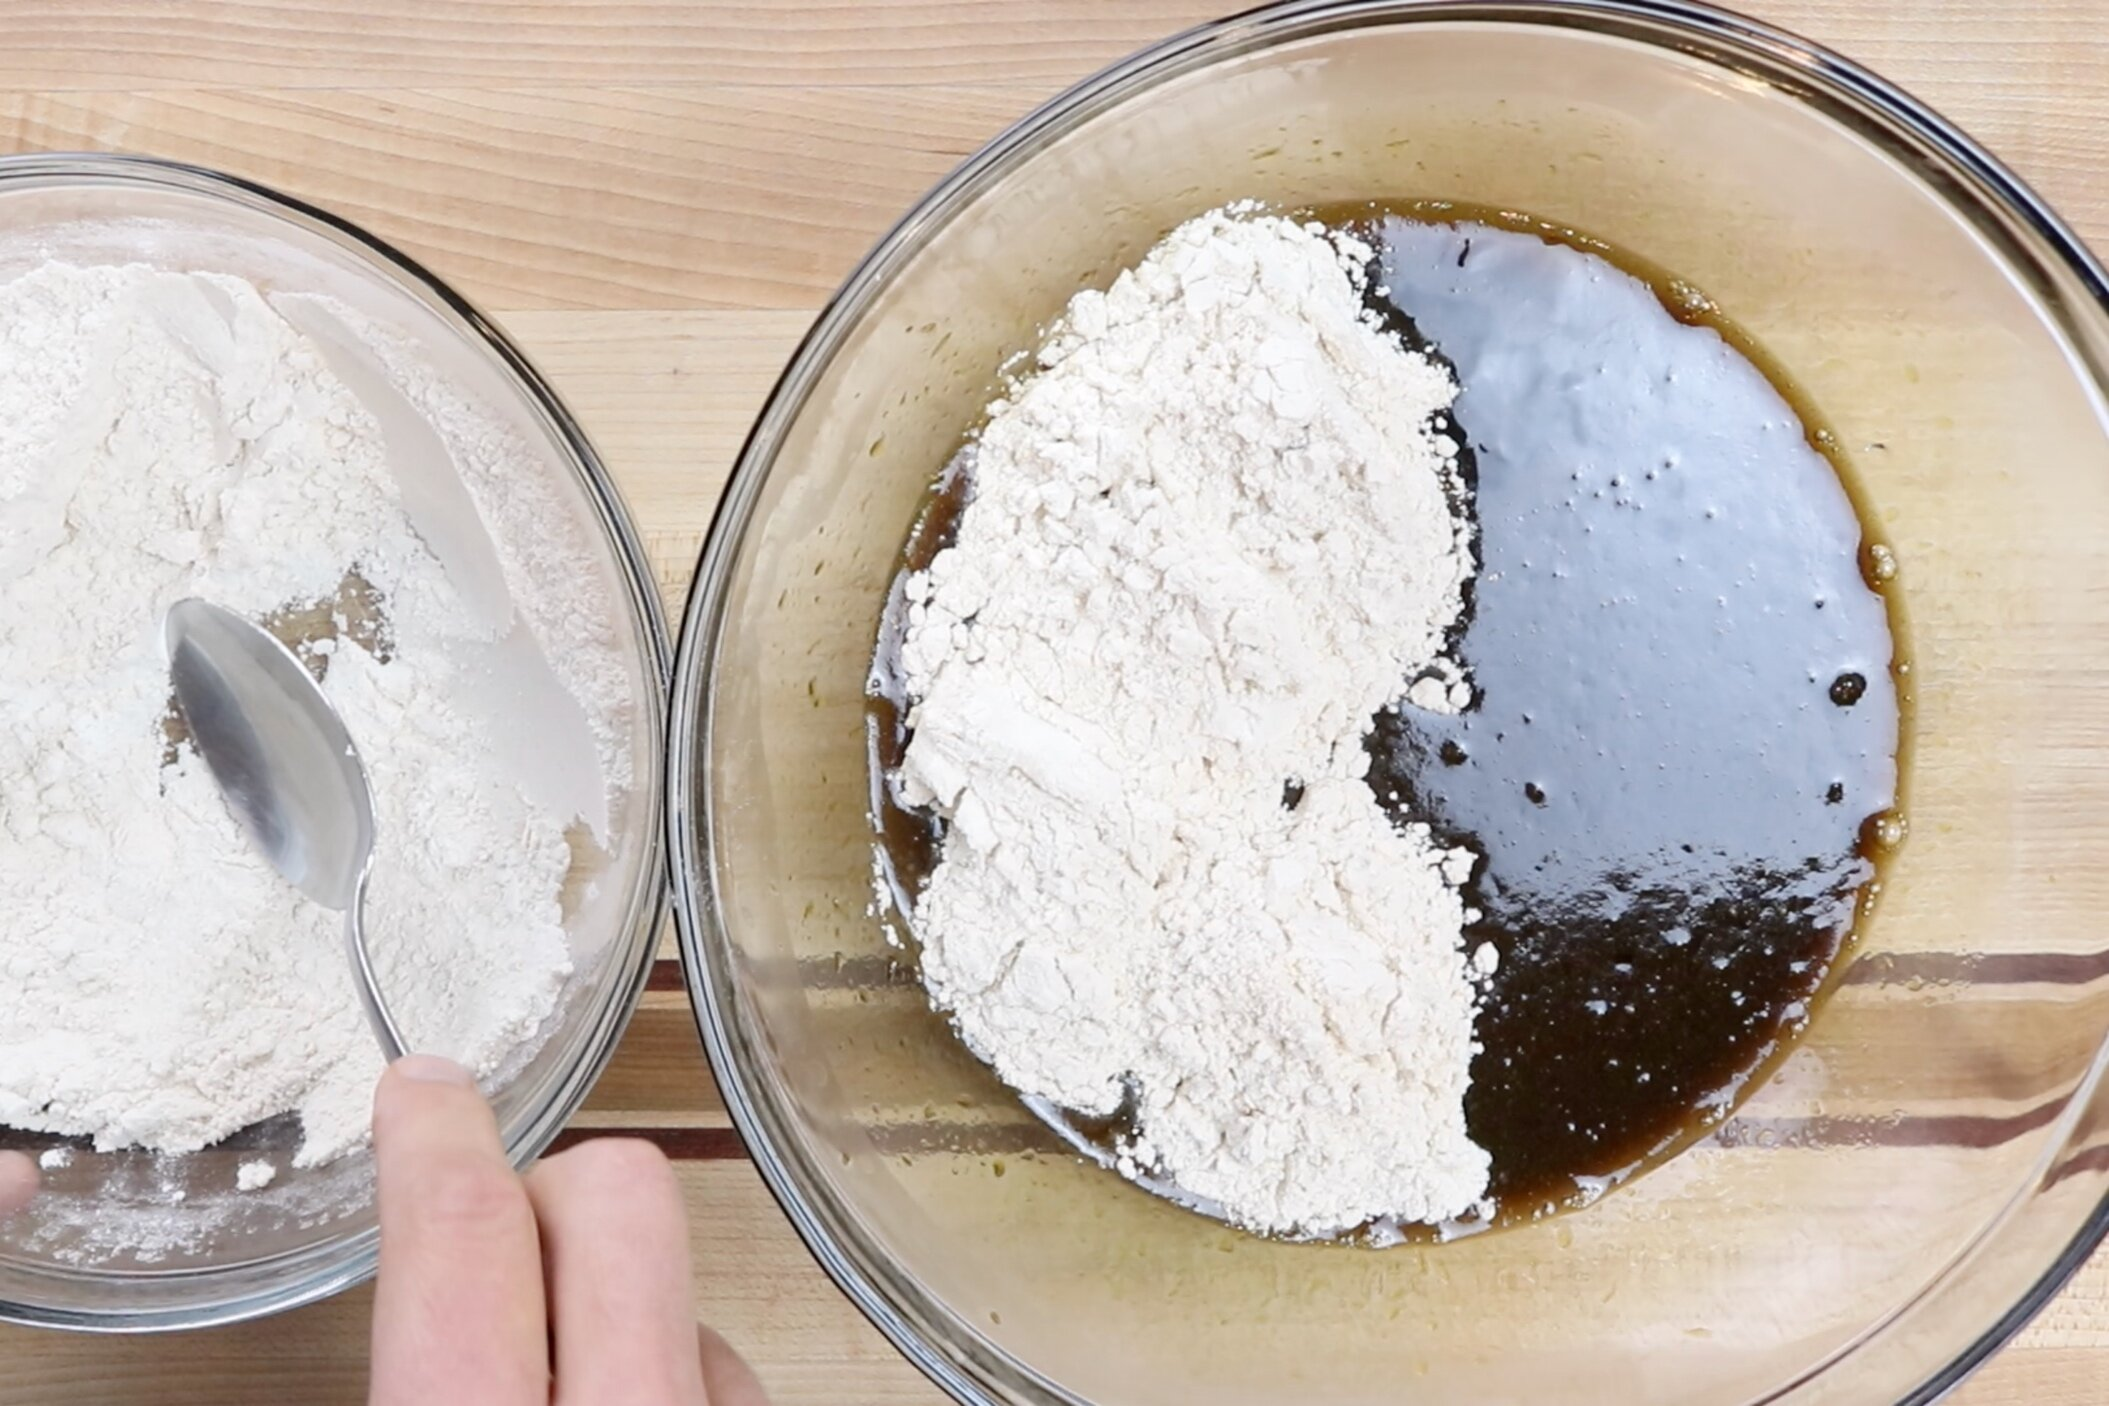 5. Slowly add the dry ingredients to the wet ingredients and whisk until just combined. -